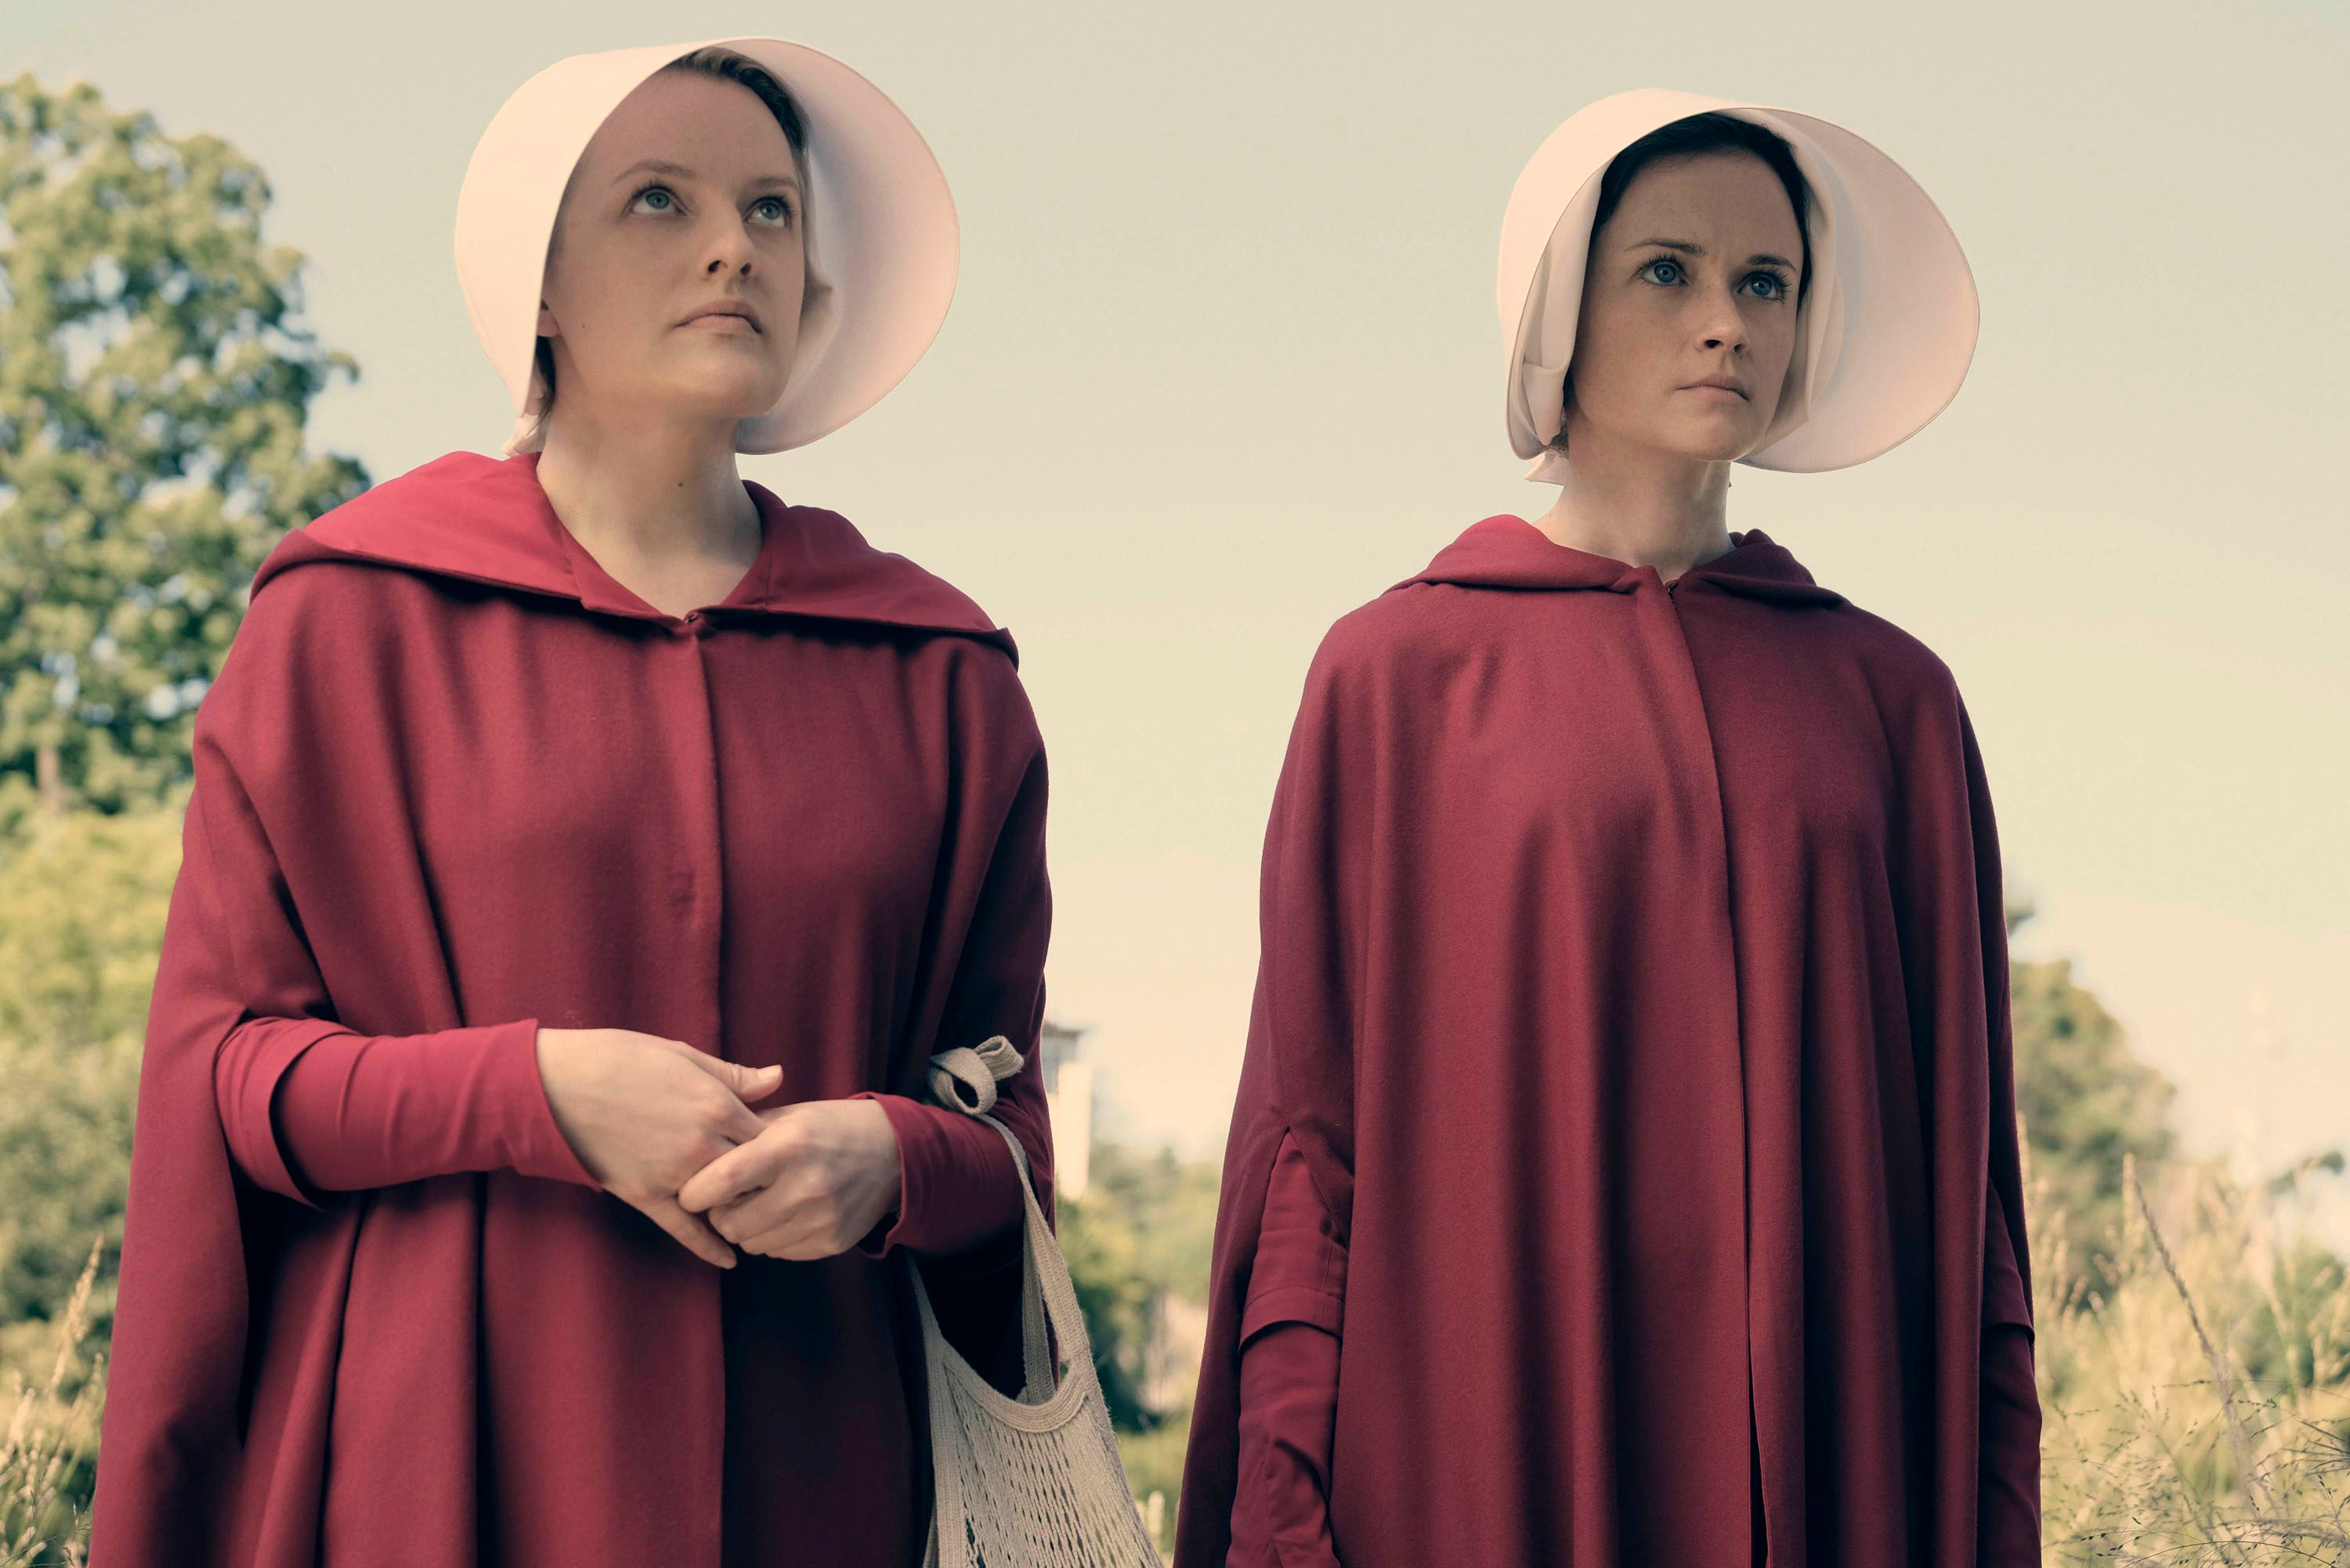 journeys in handmaids tale The horrors of the handmaid's tale have largely writhed rather than vie for triple-word scores they were about to embark on a nightmare journey to a gilded.